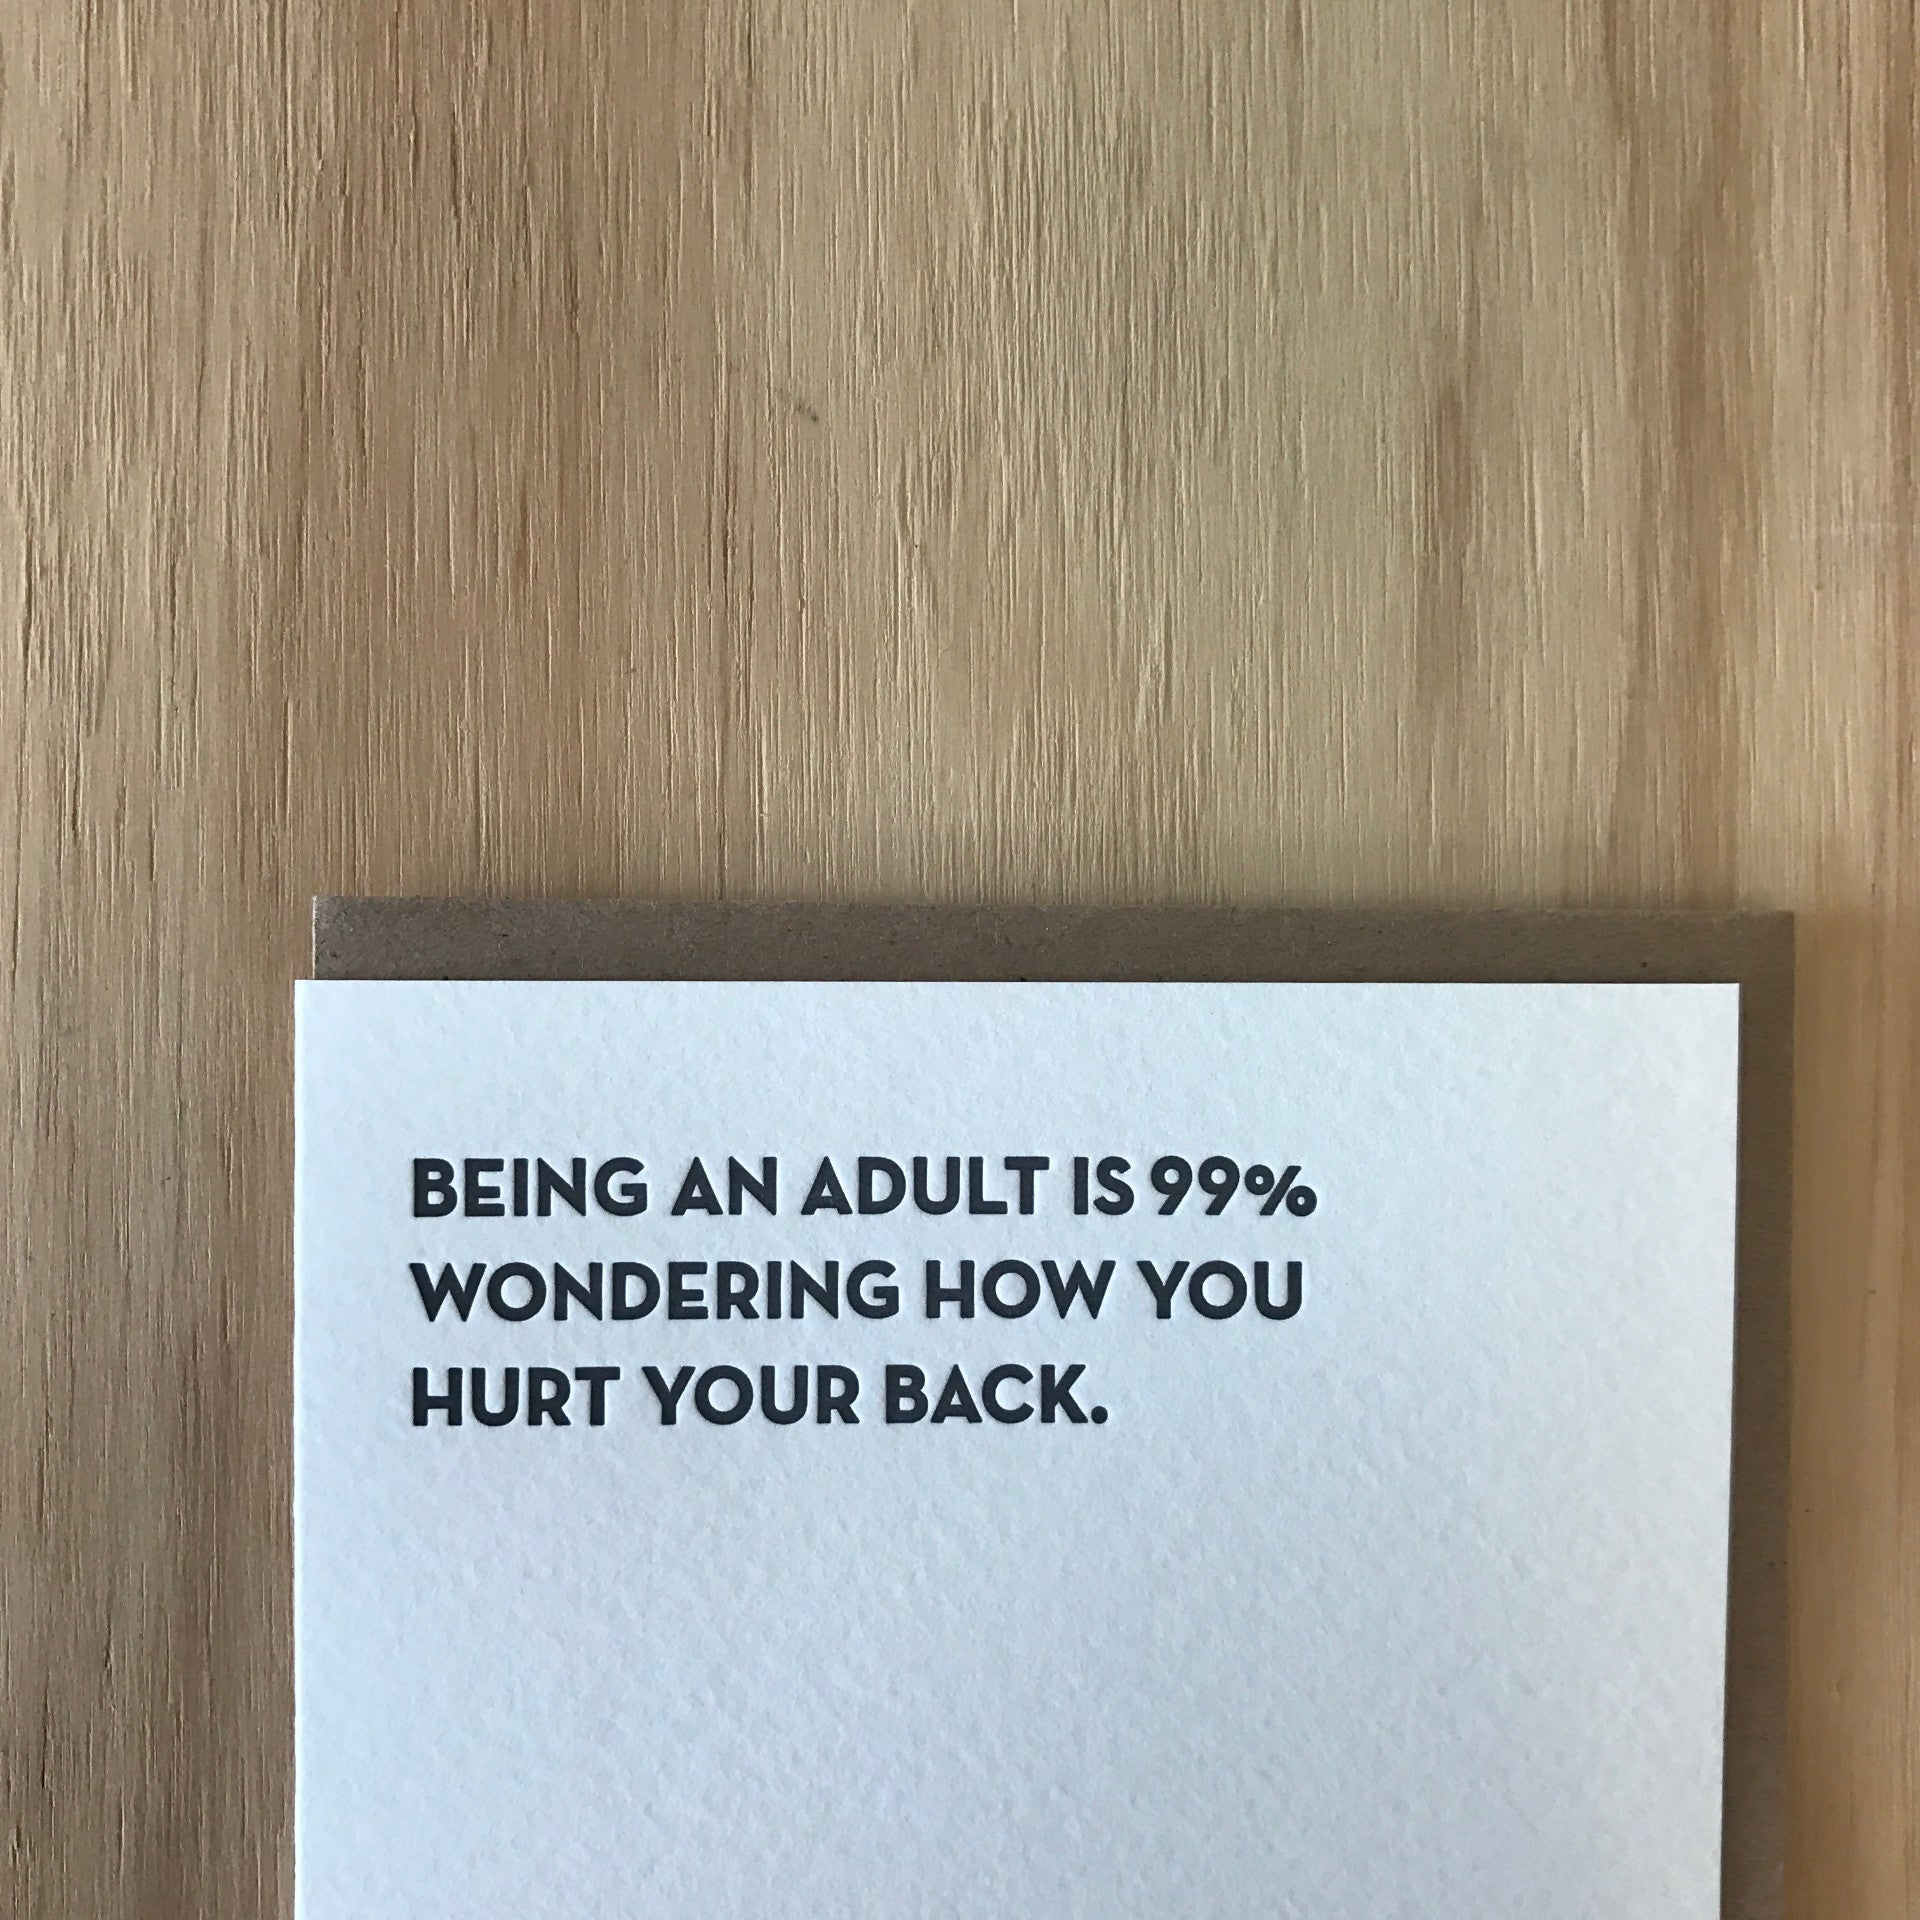 BEING AN ADULT Letterpress Greeting Card by Sapling Press - Upstate MN